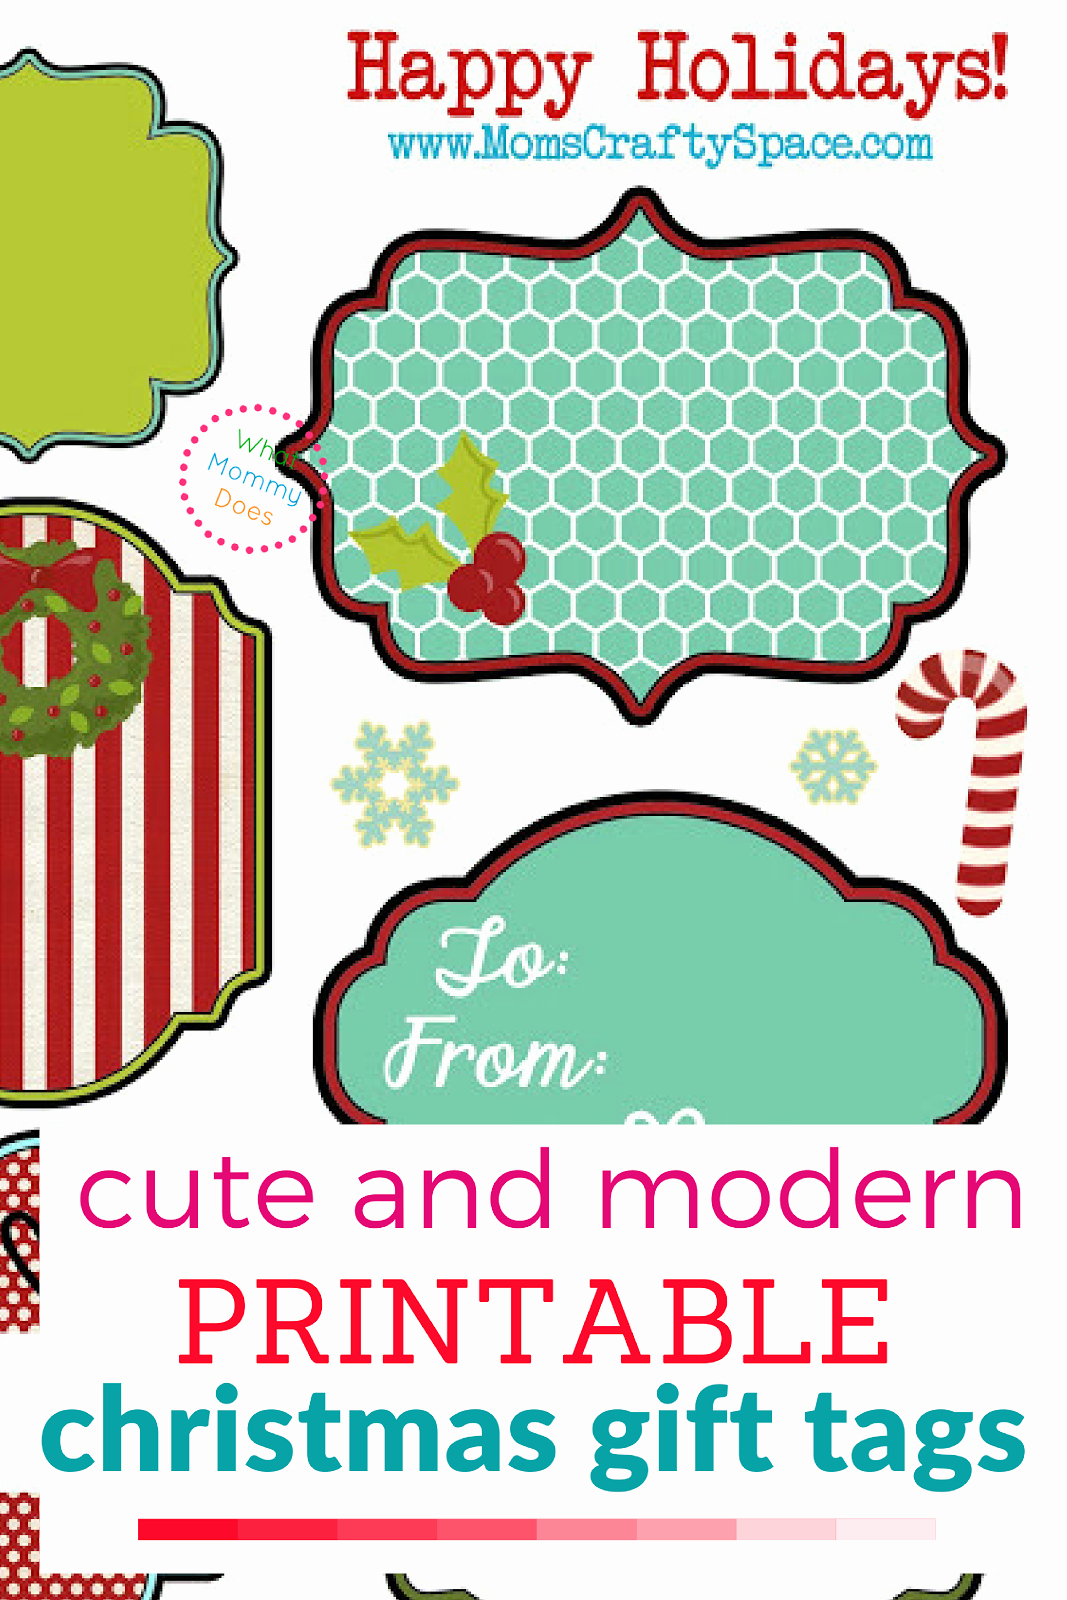 Template for Tags for Gifts Inspirational Free Printable Christmas Gift Tags